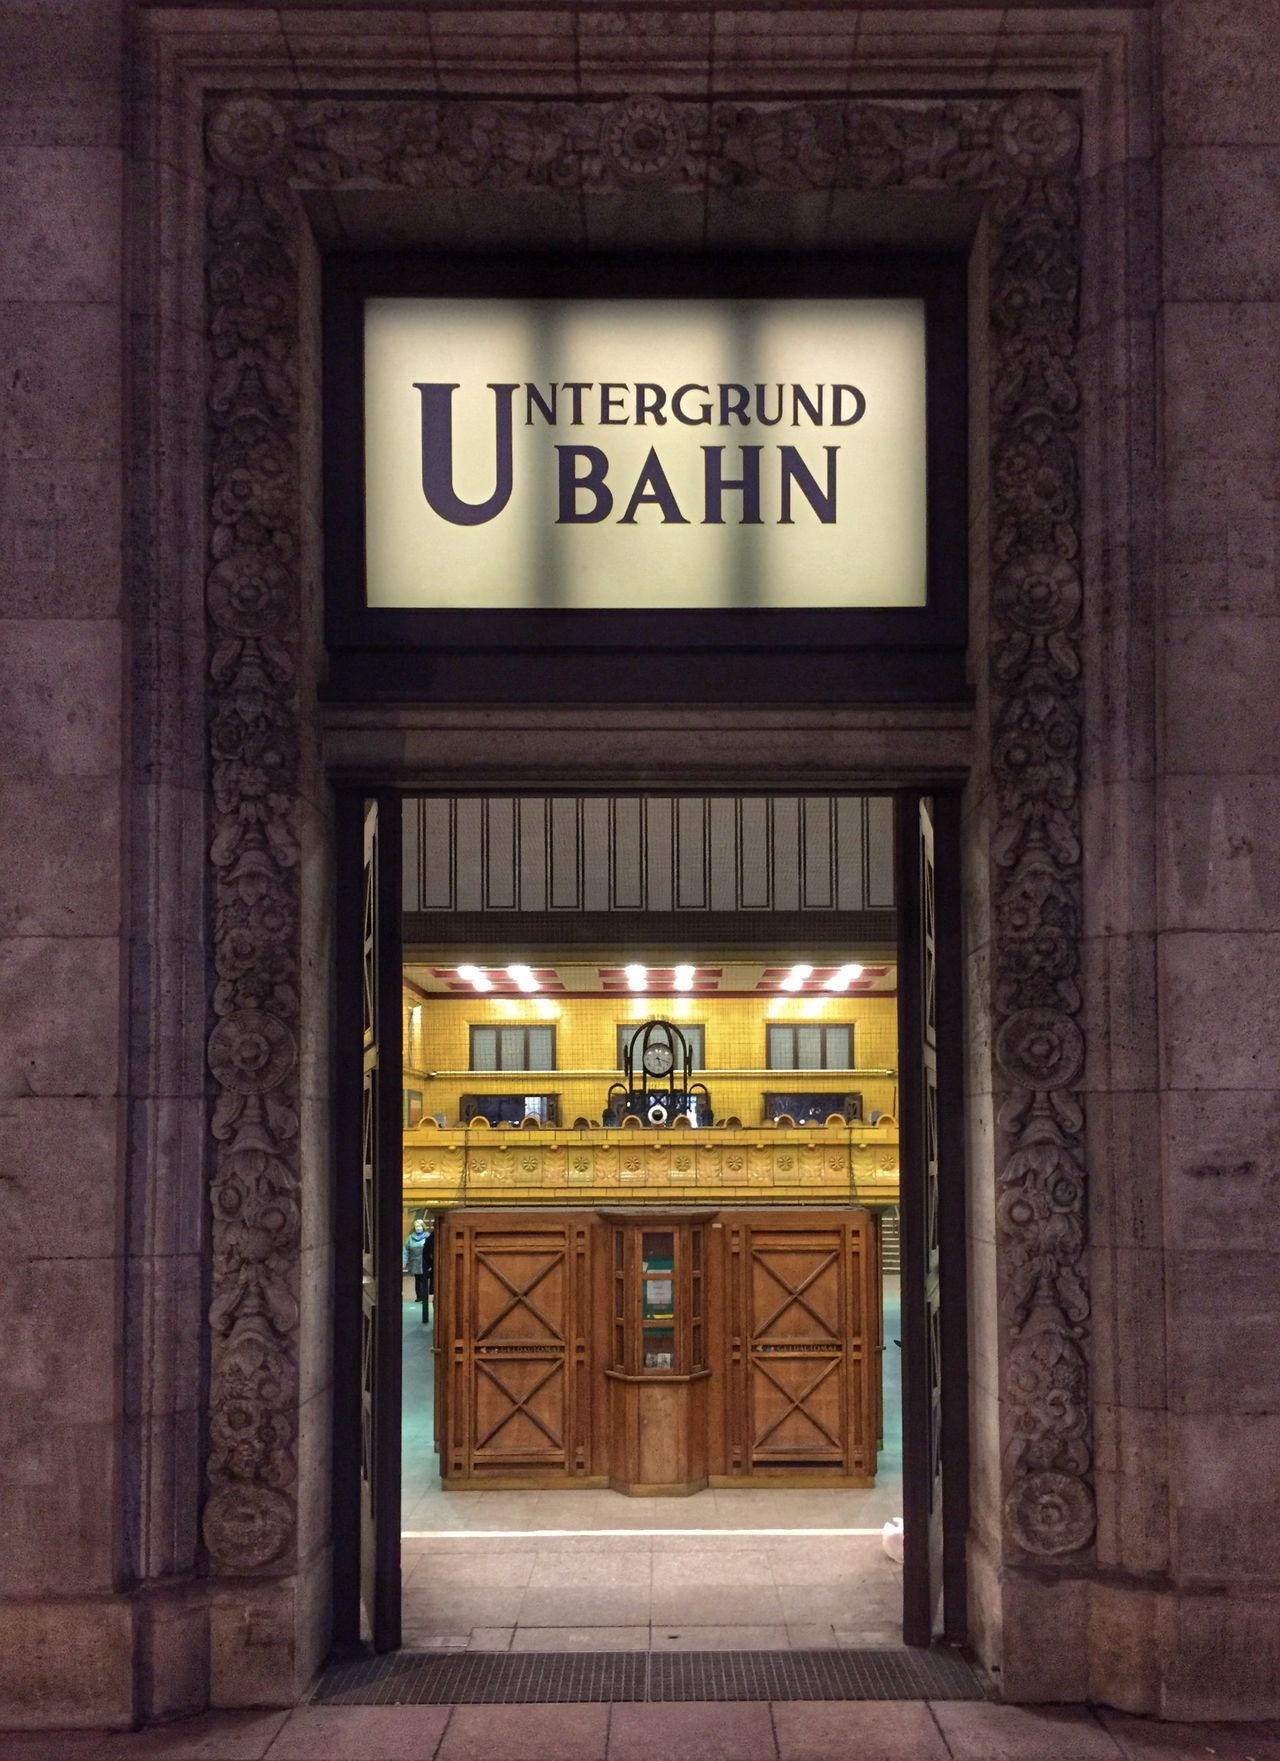 Ubahn Berlin Ubahn Entrance Door